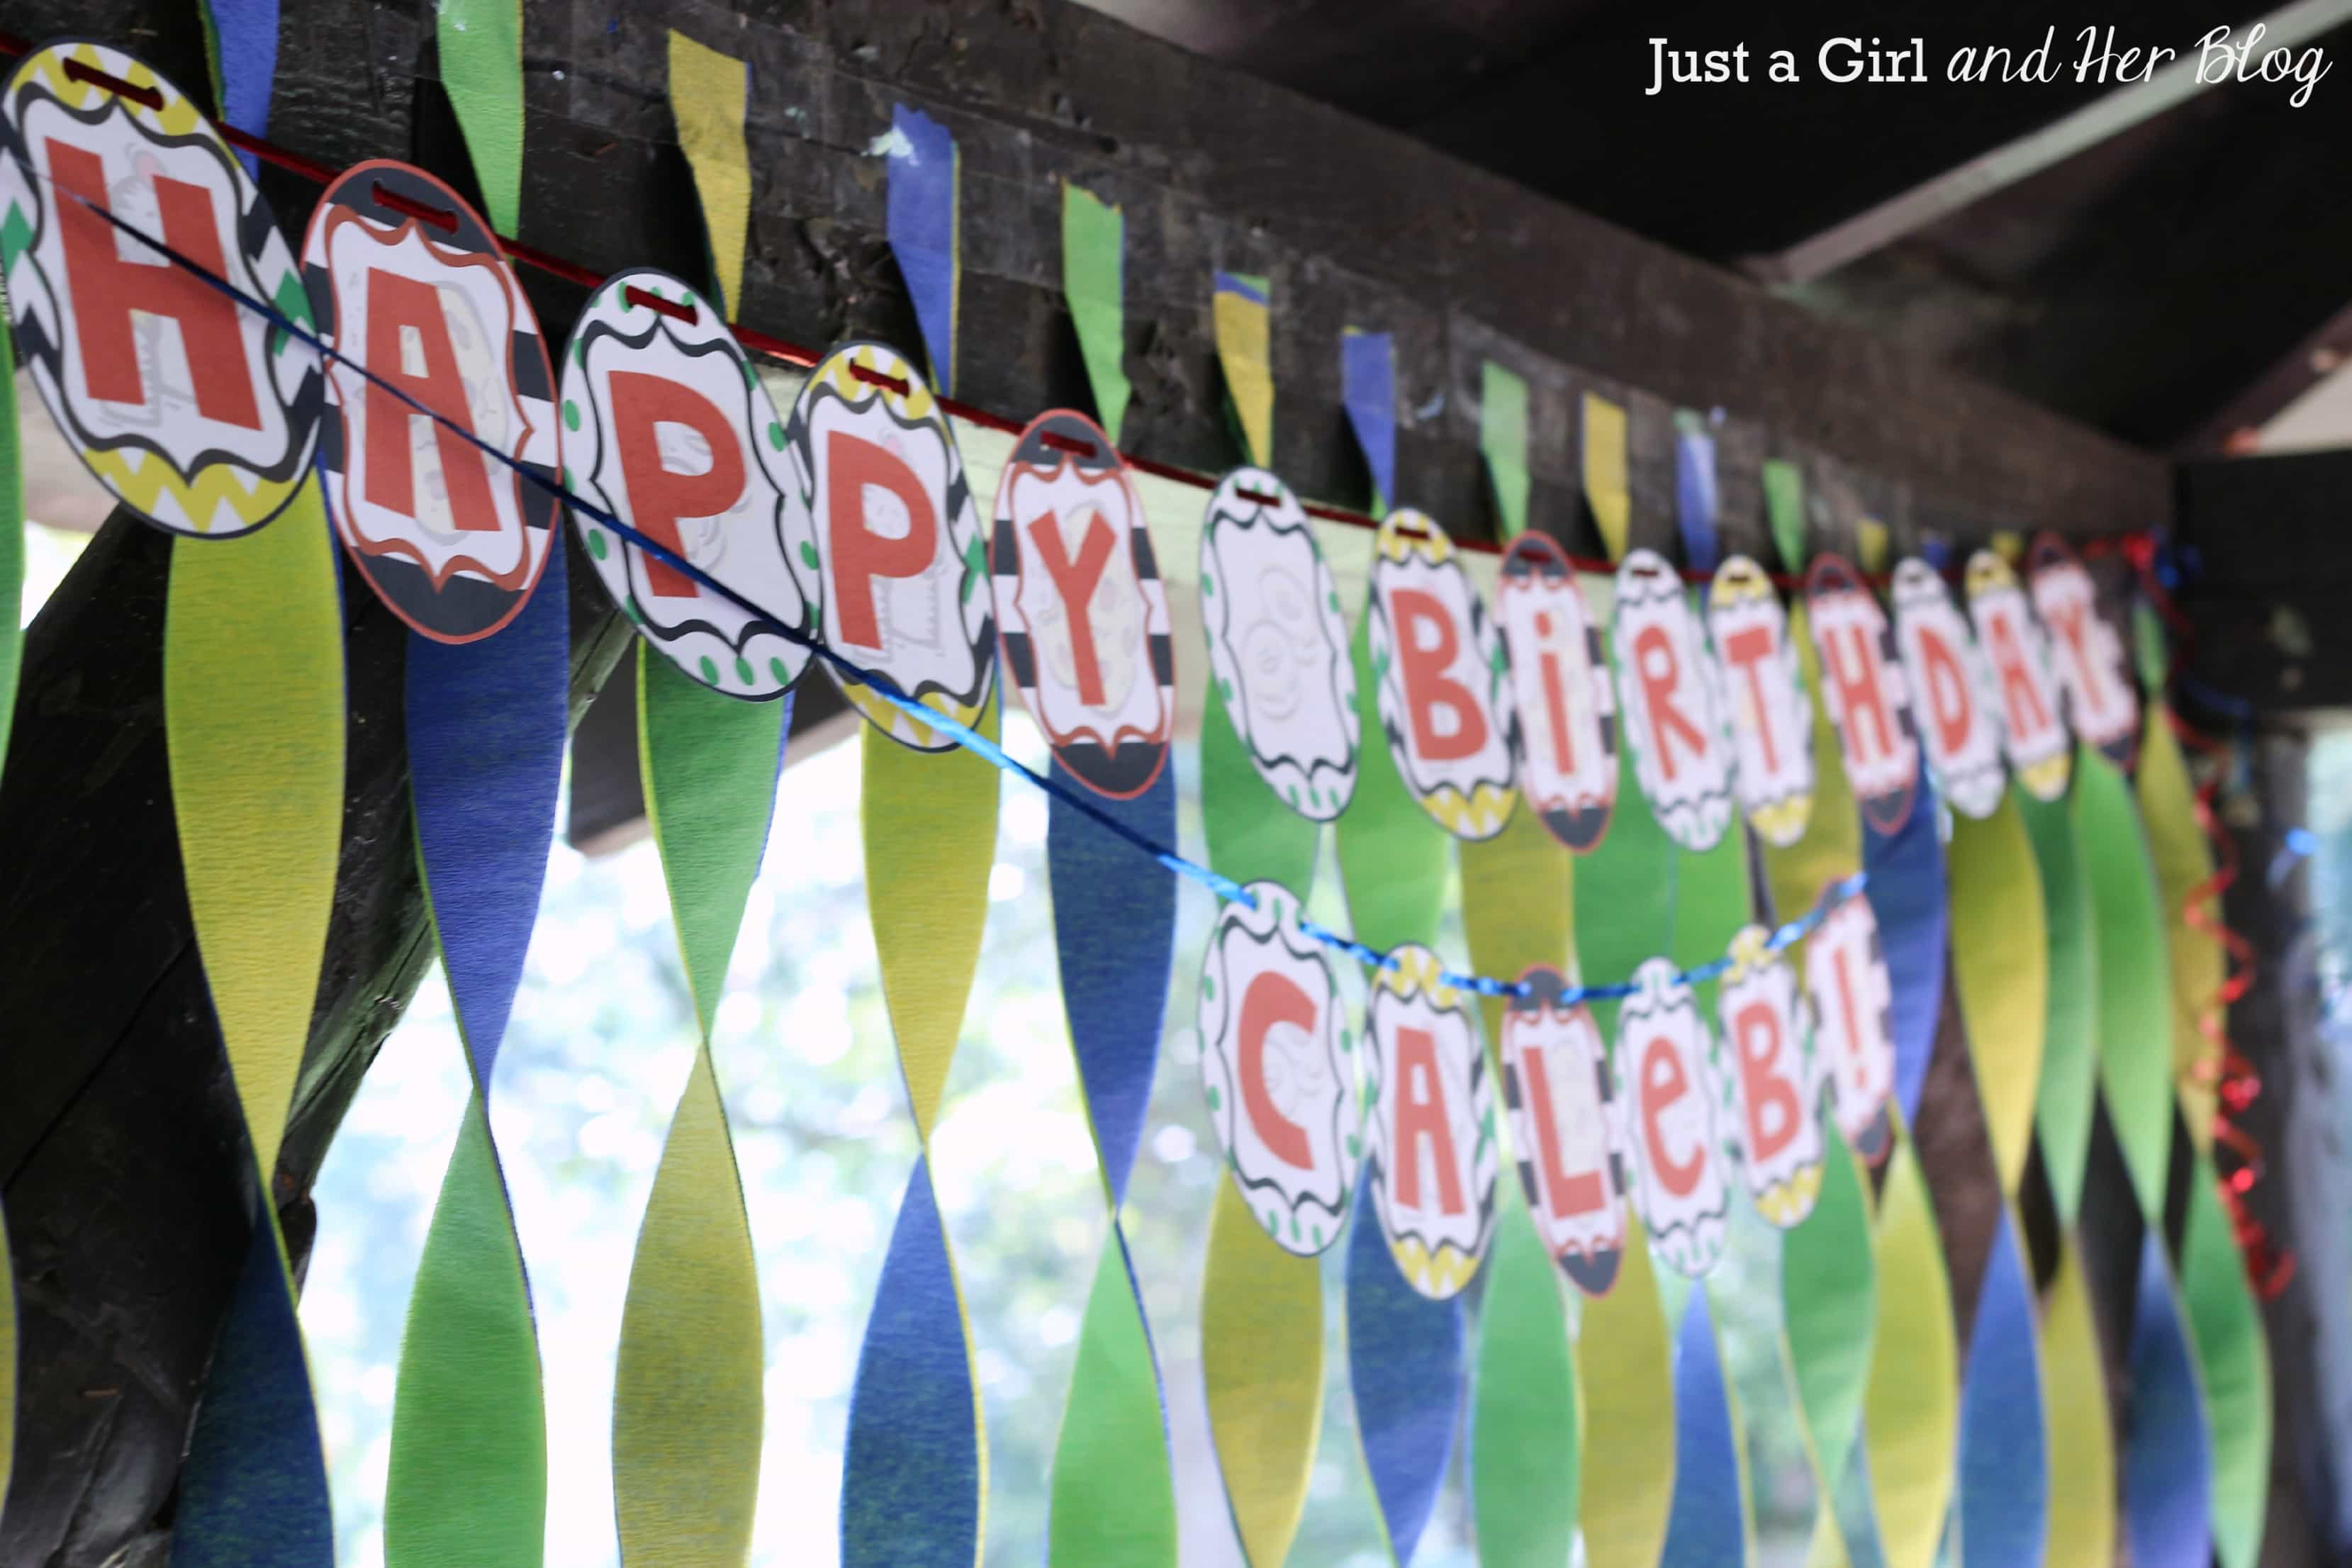 If You Give A Boy A Birthday Party Just A Girl And Her Blog